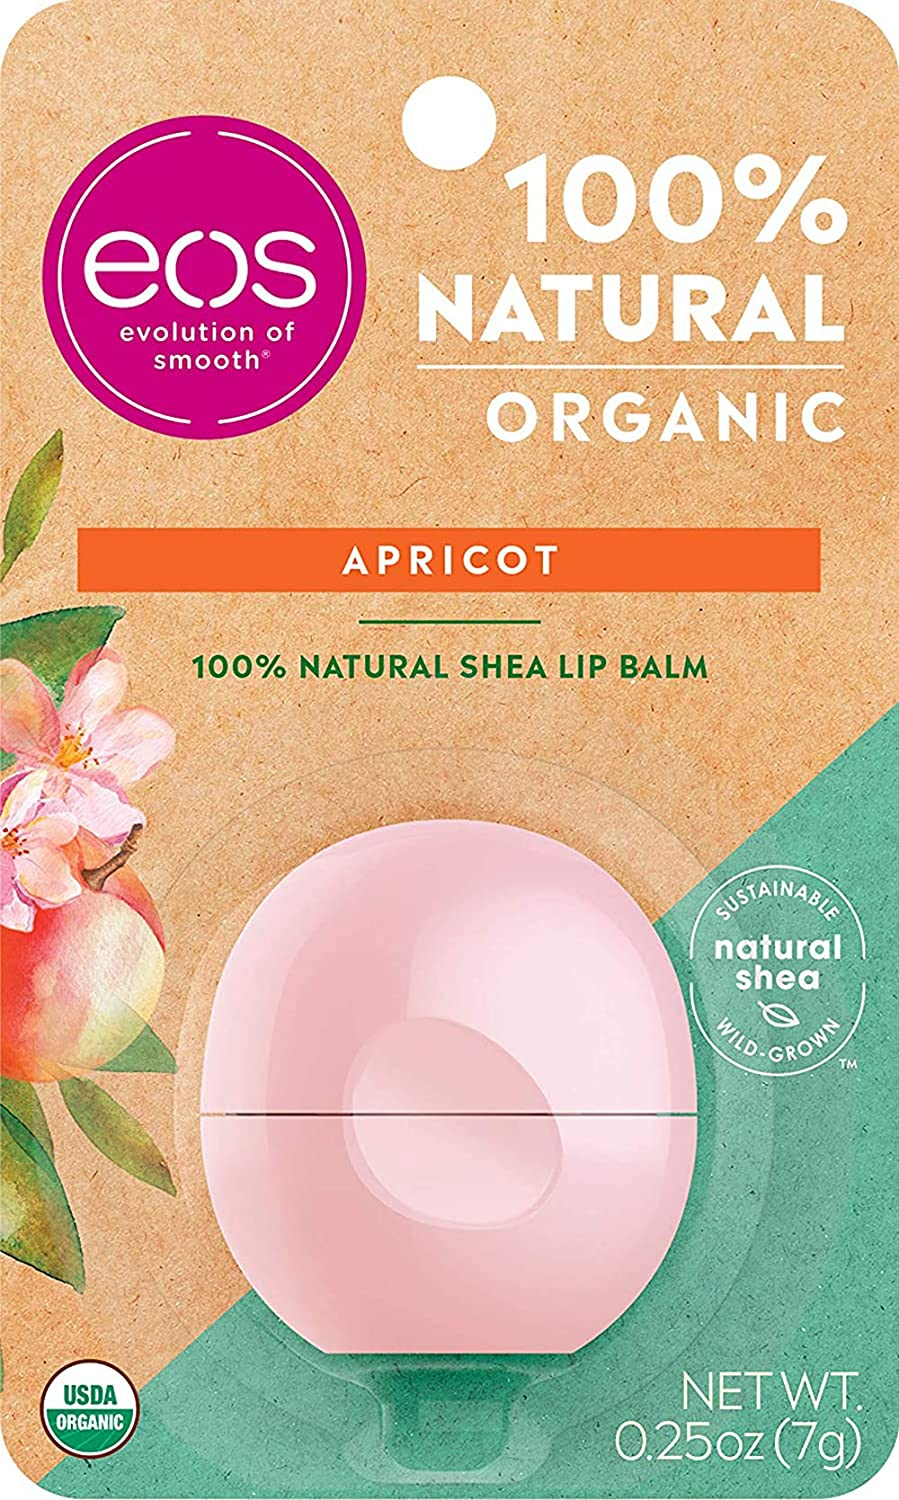 eos Natural & Organic Sphere Lip Balm - Apricot | Certified Organic & 100% Natural | Deeply Hydrates and Seals in Moisture | 0.25 oz